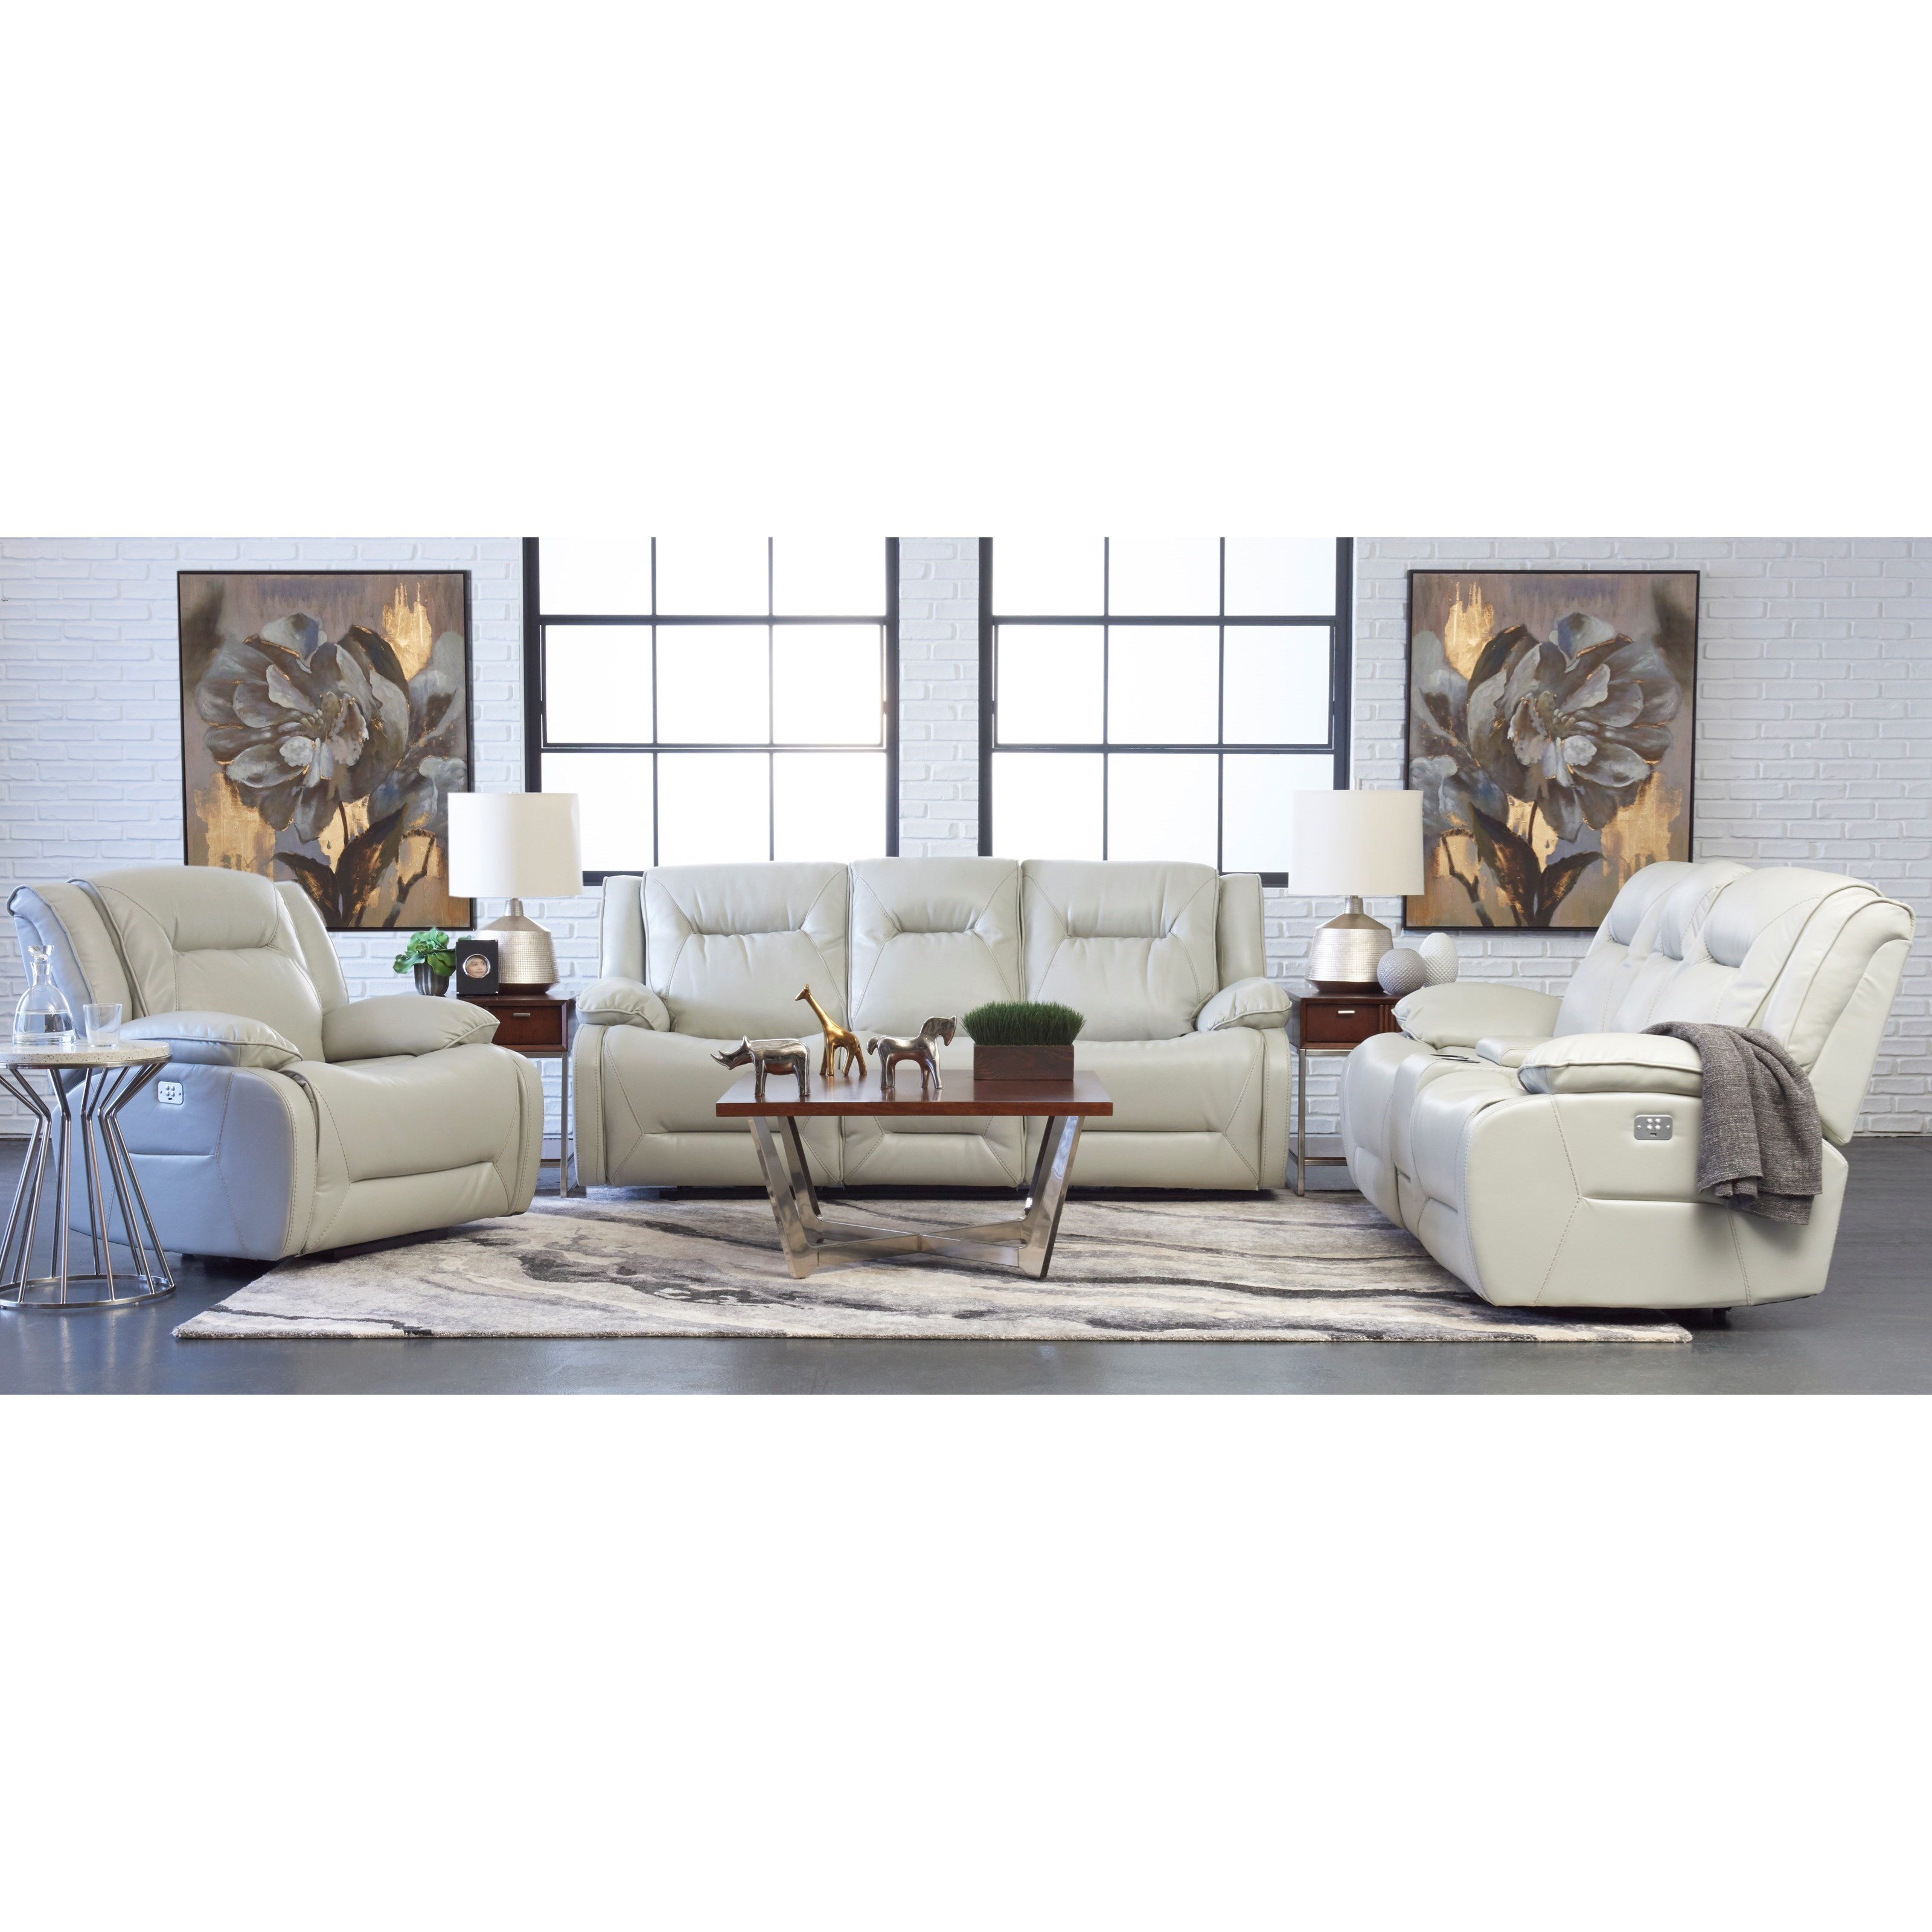 Dansby Reclining Living Room Group by Klaussner International at Northeast Factory Direct